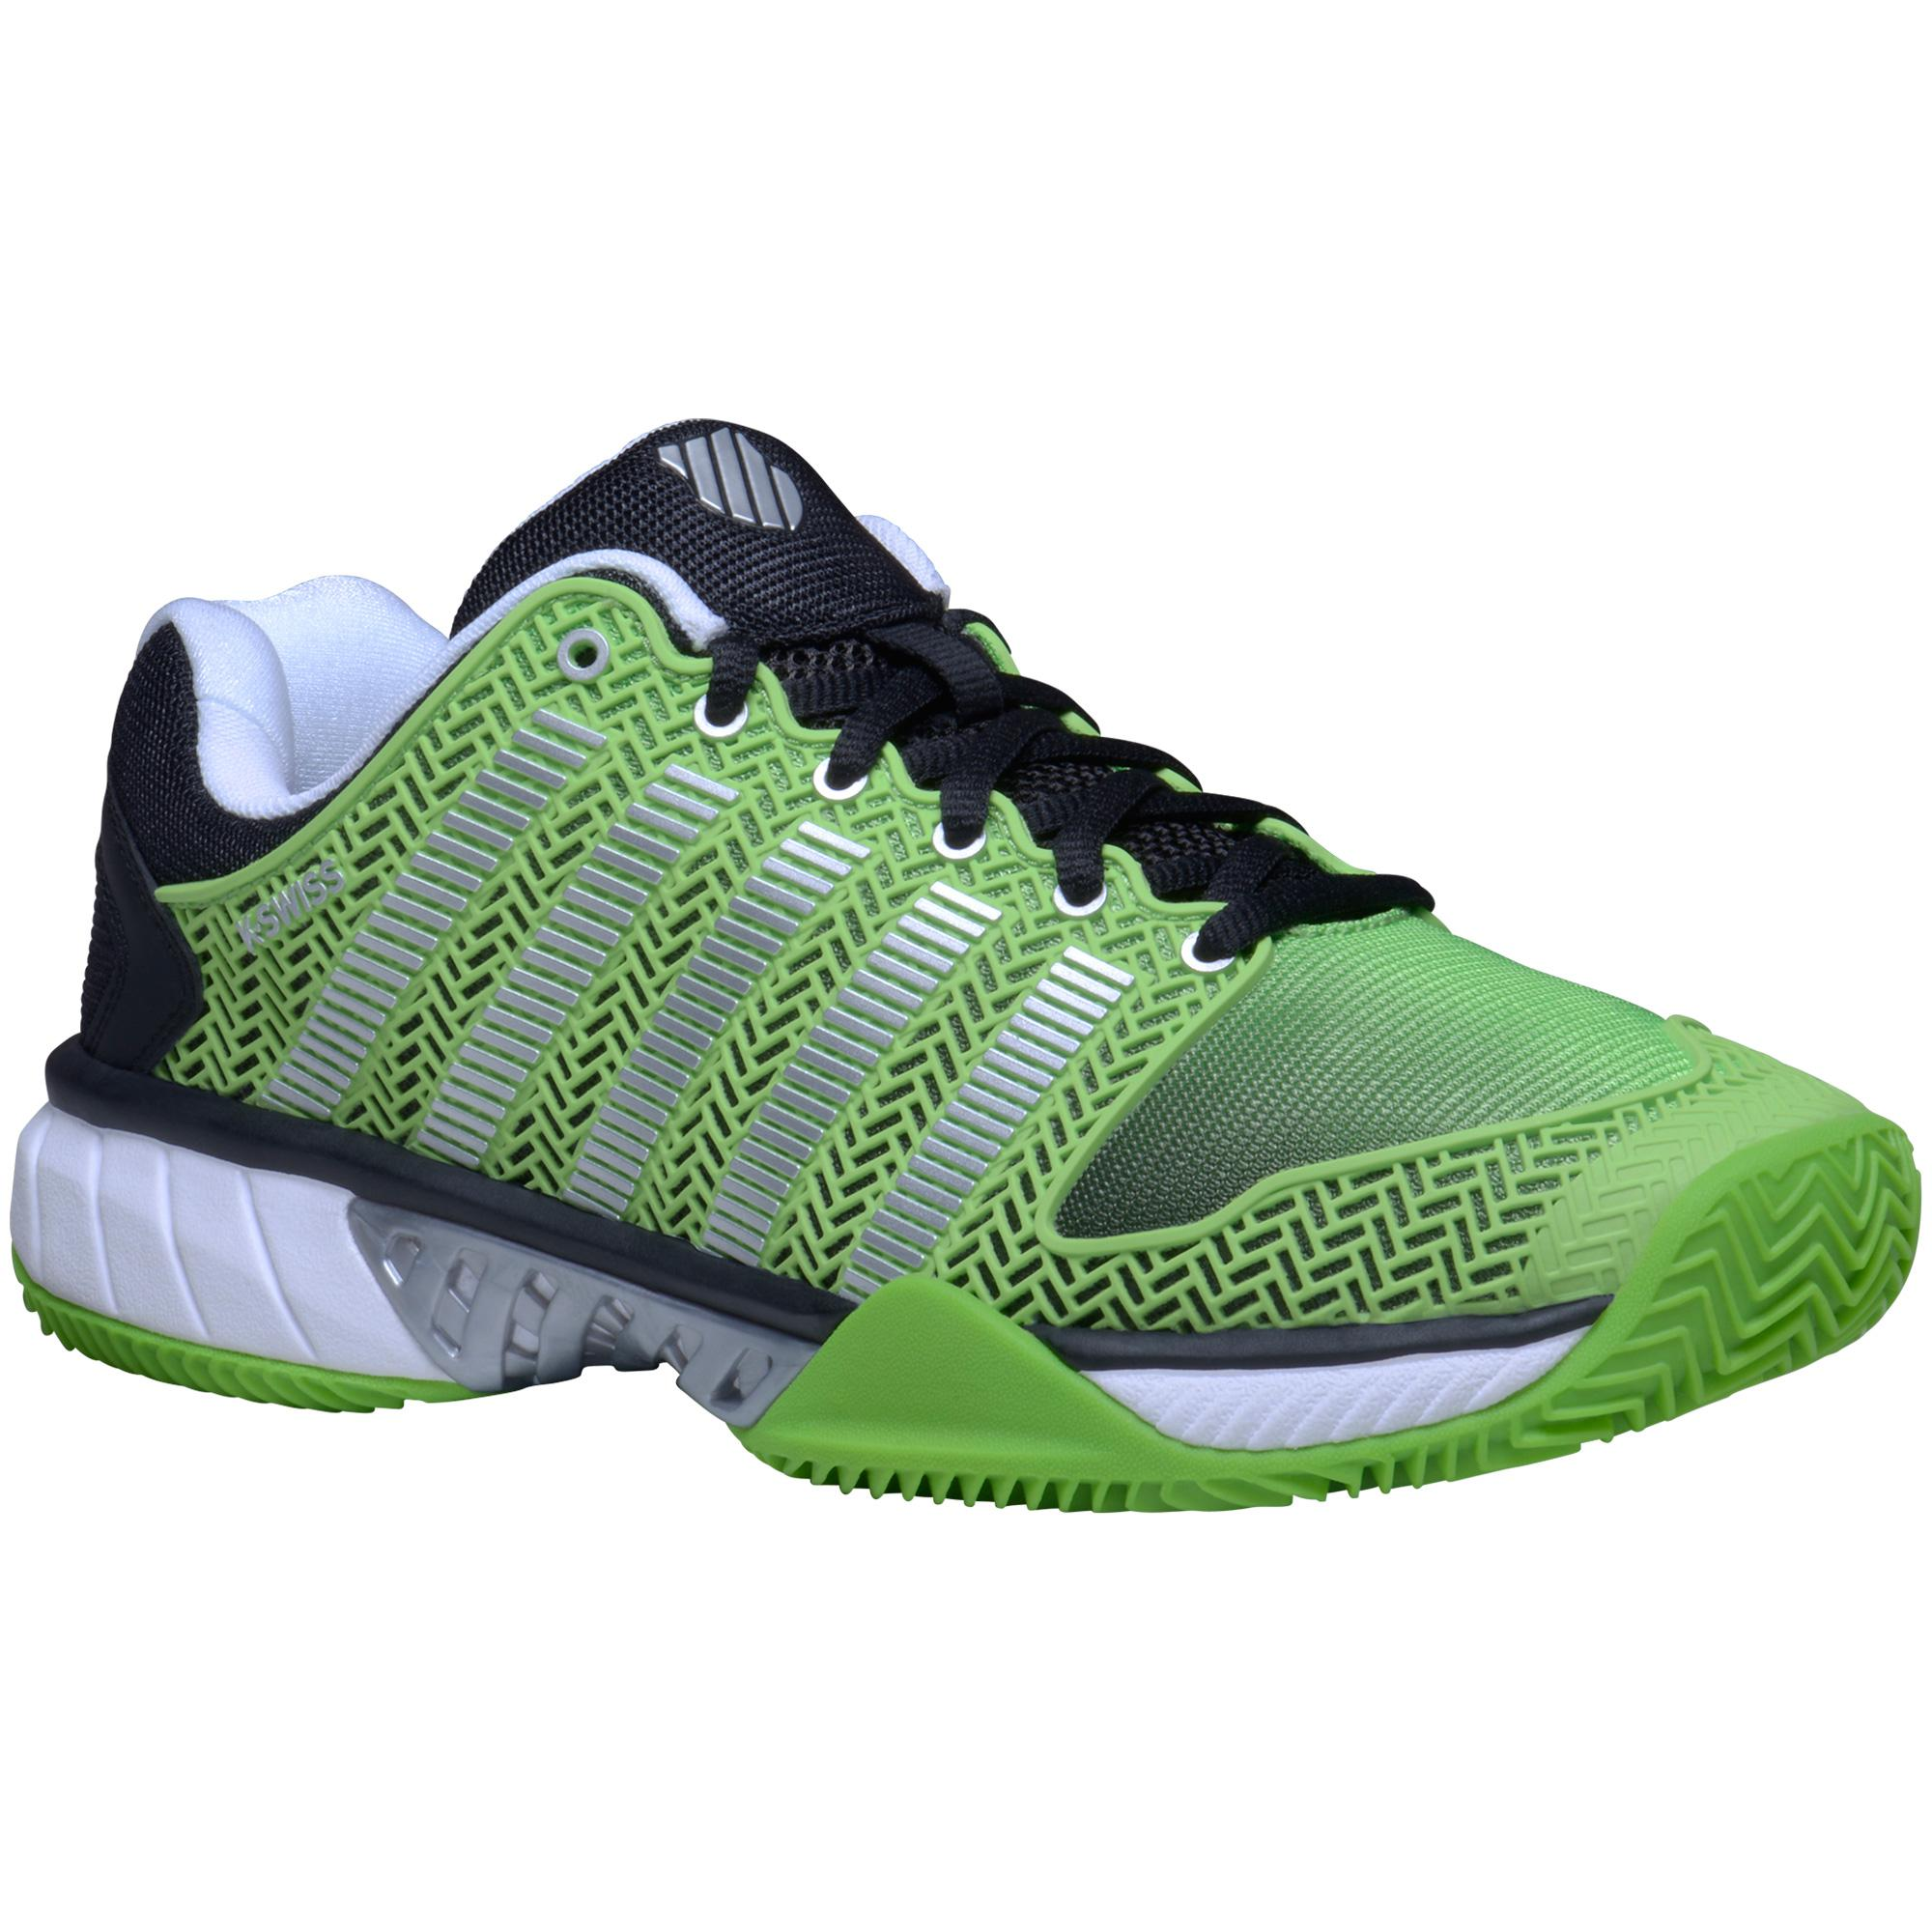 Wider Mens Tennis Shoes